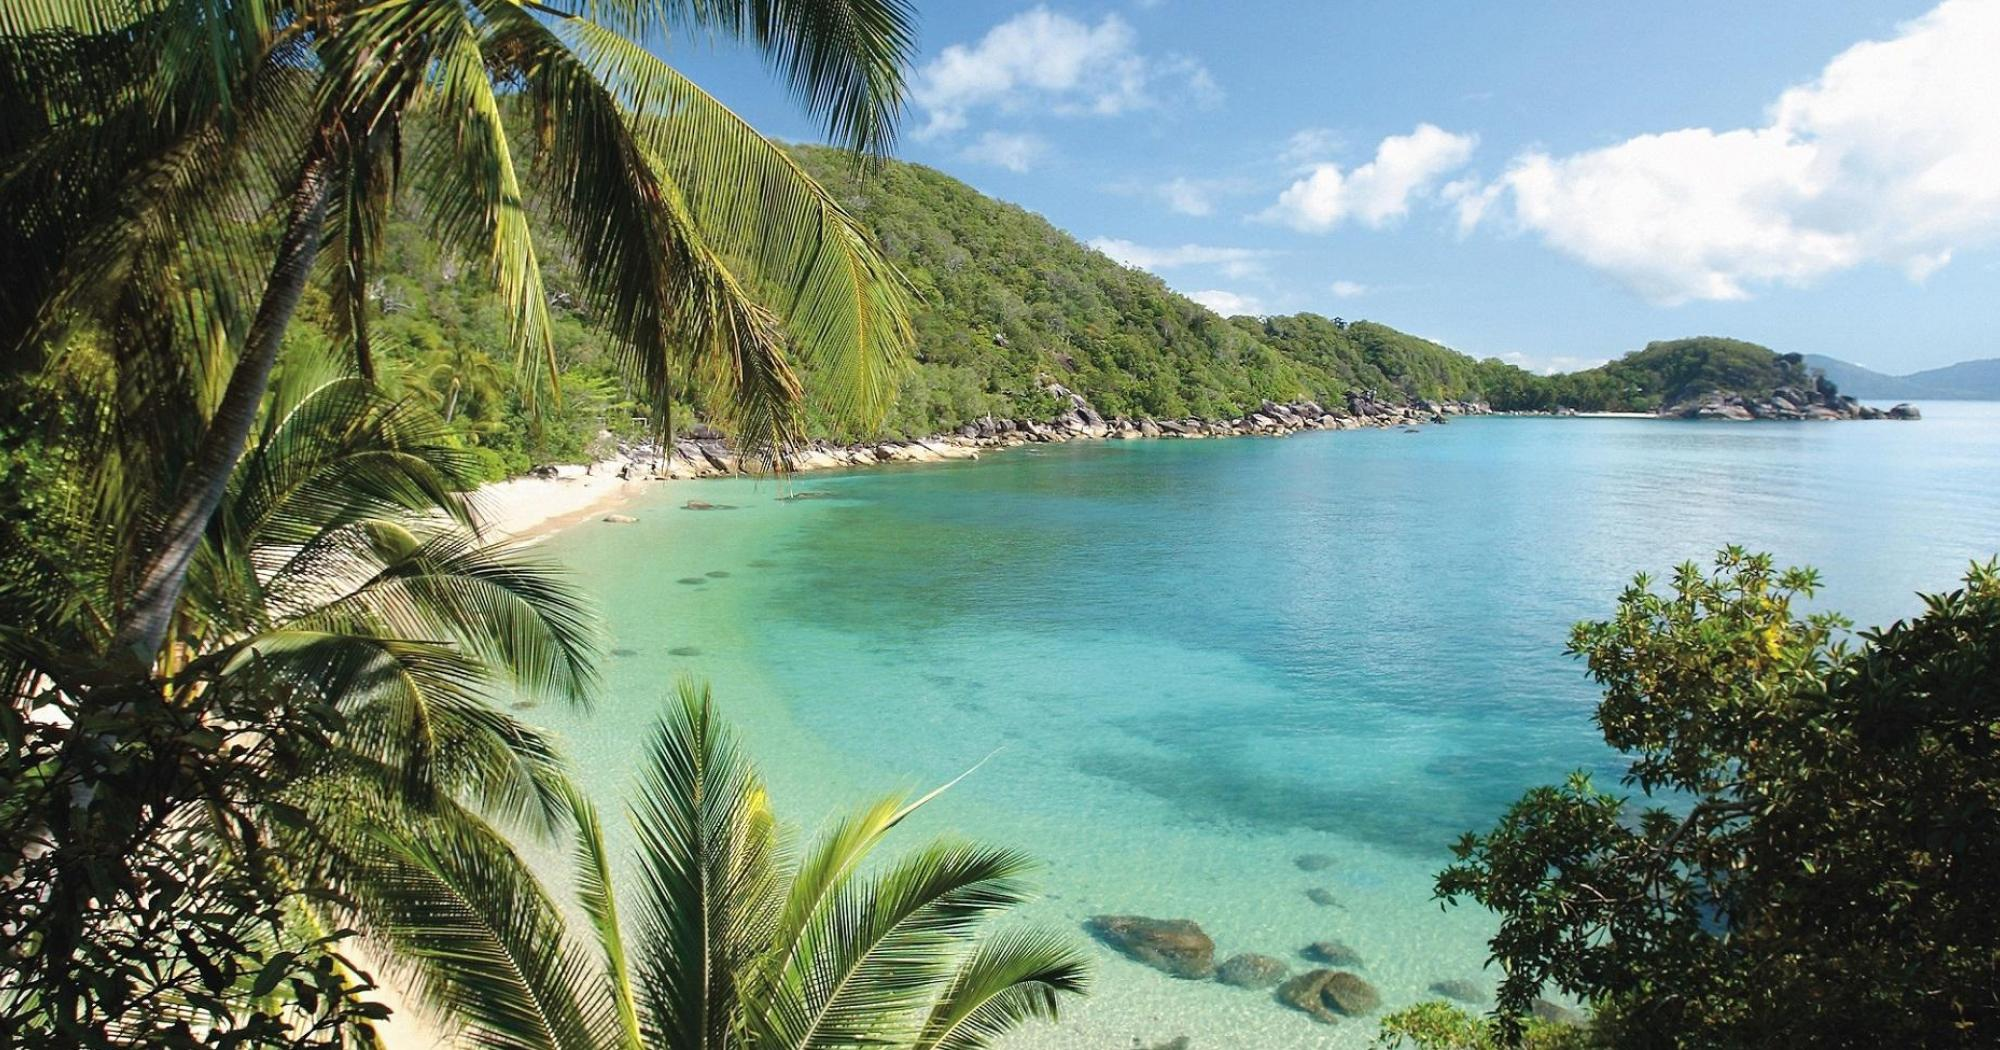 Bedarra Island Resort with turquoise blue water and coconut palm trees image credit bedarra.com.au